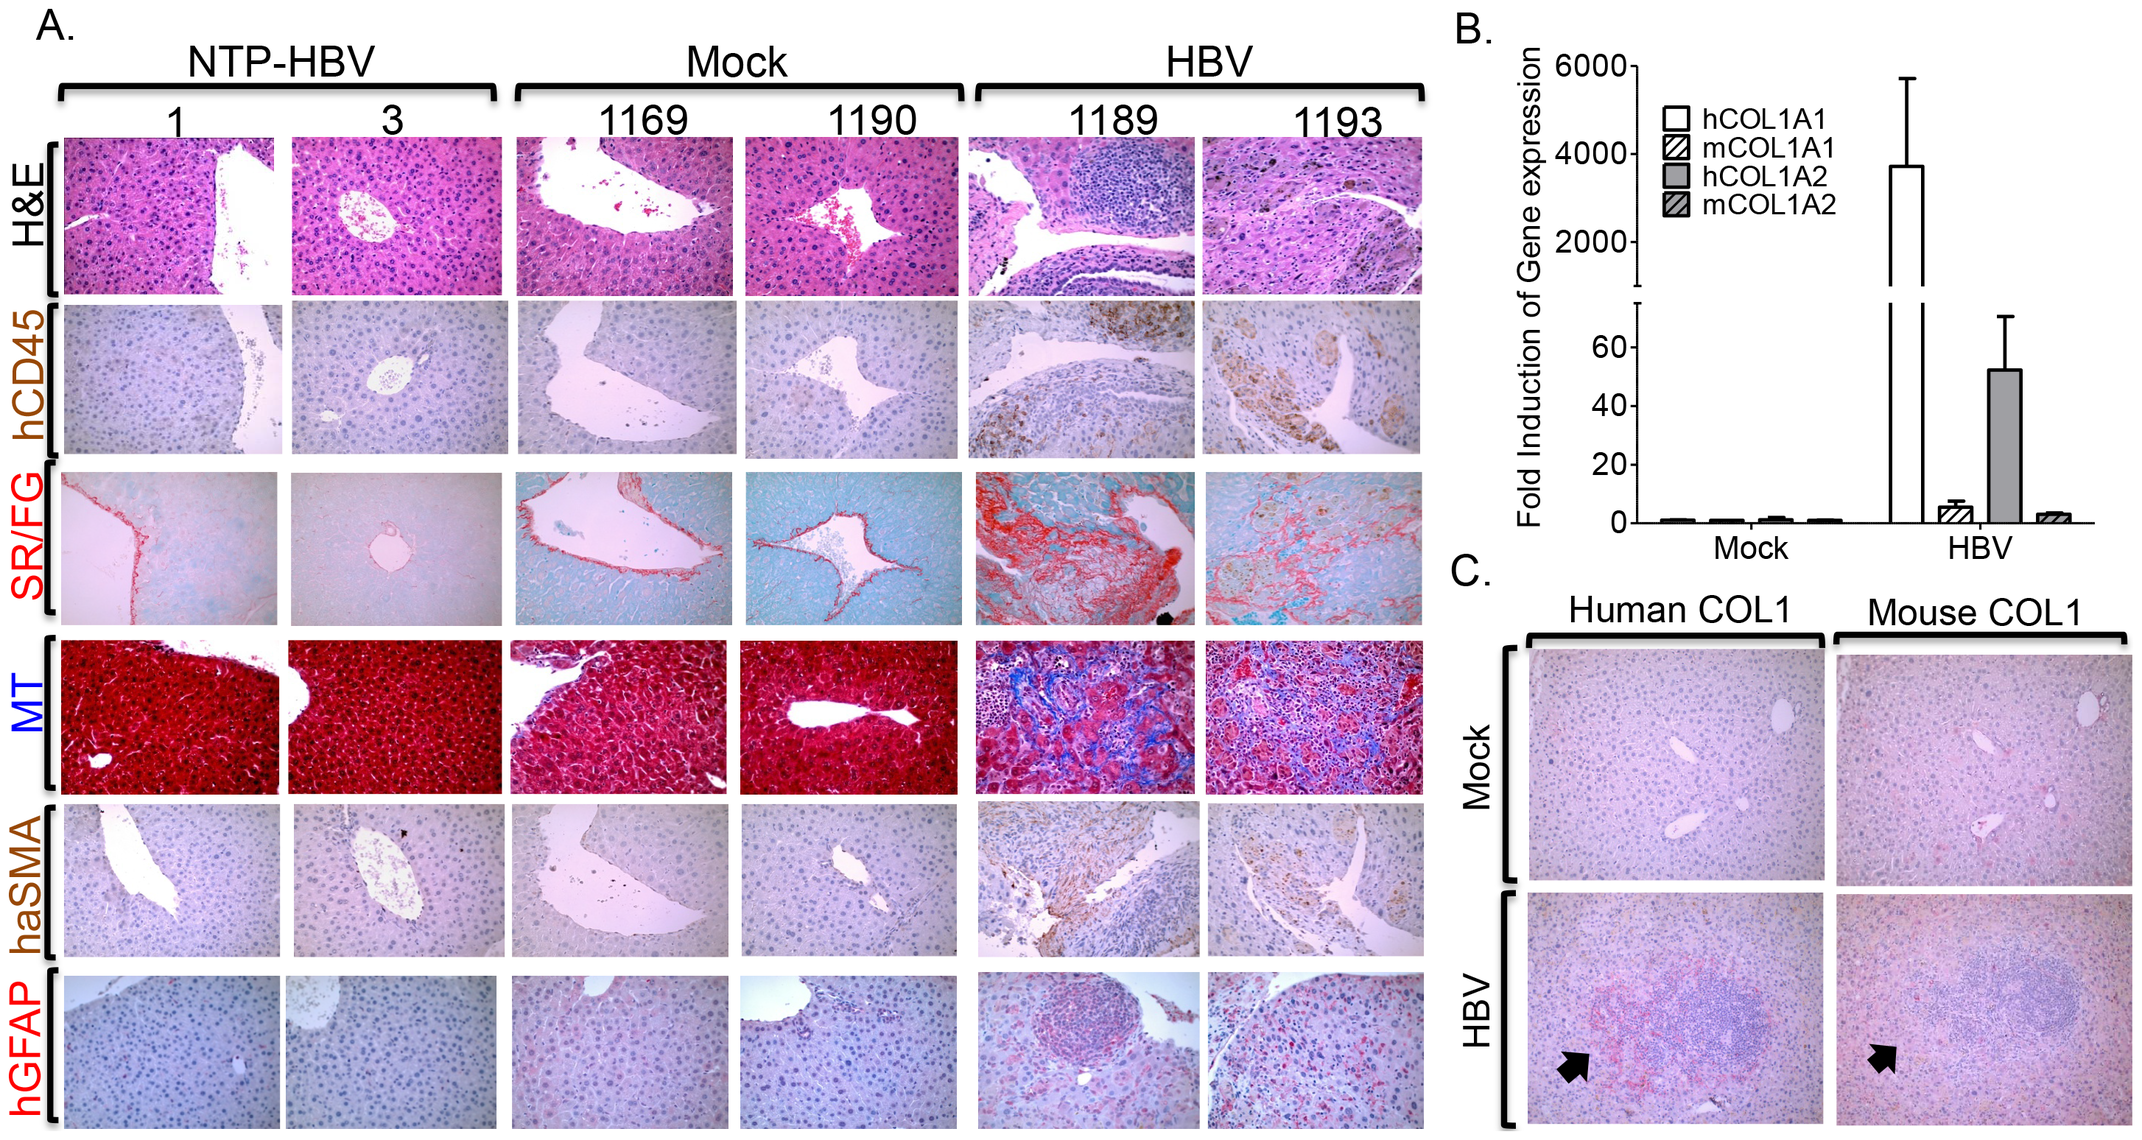 HBV infection induces chronic hepatitis and human liver fibrosis.